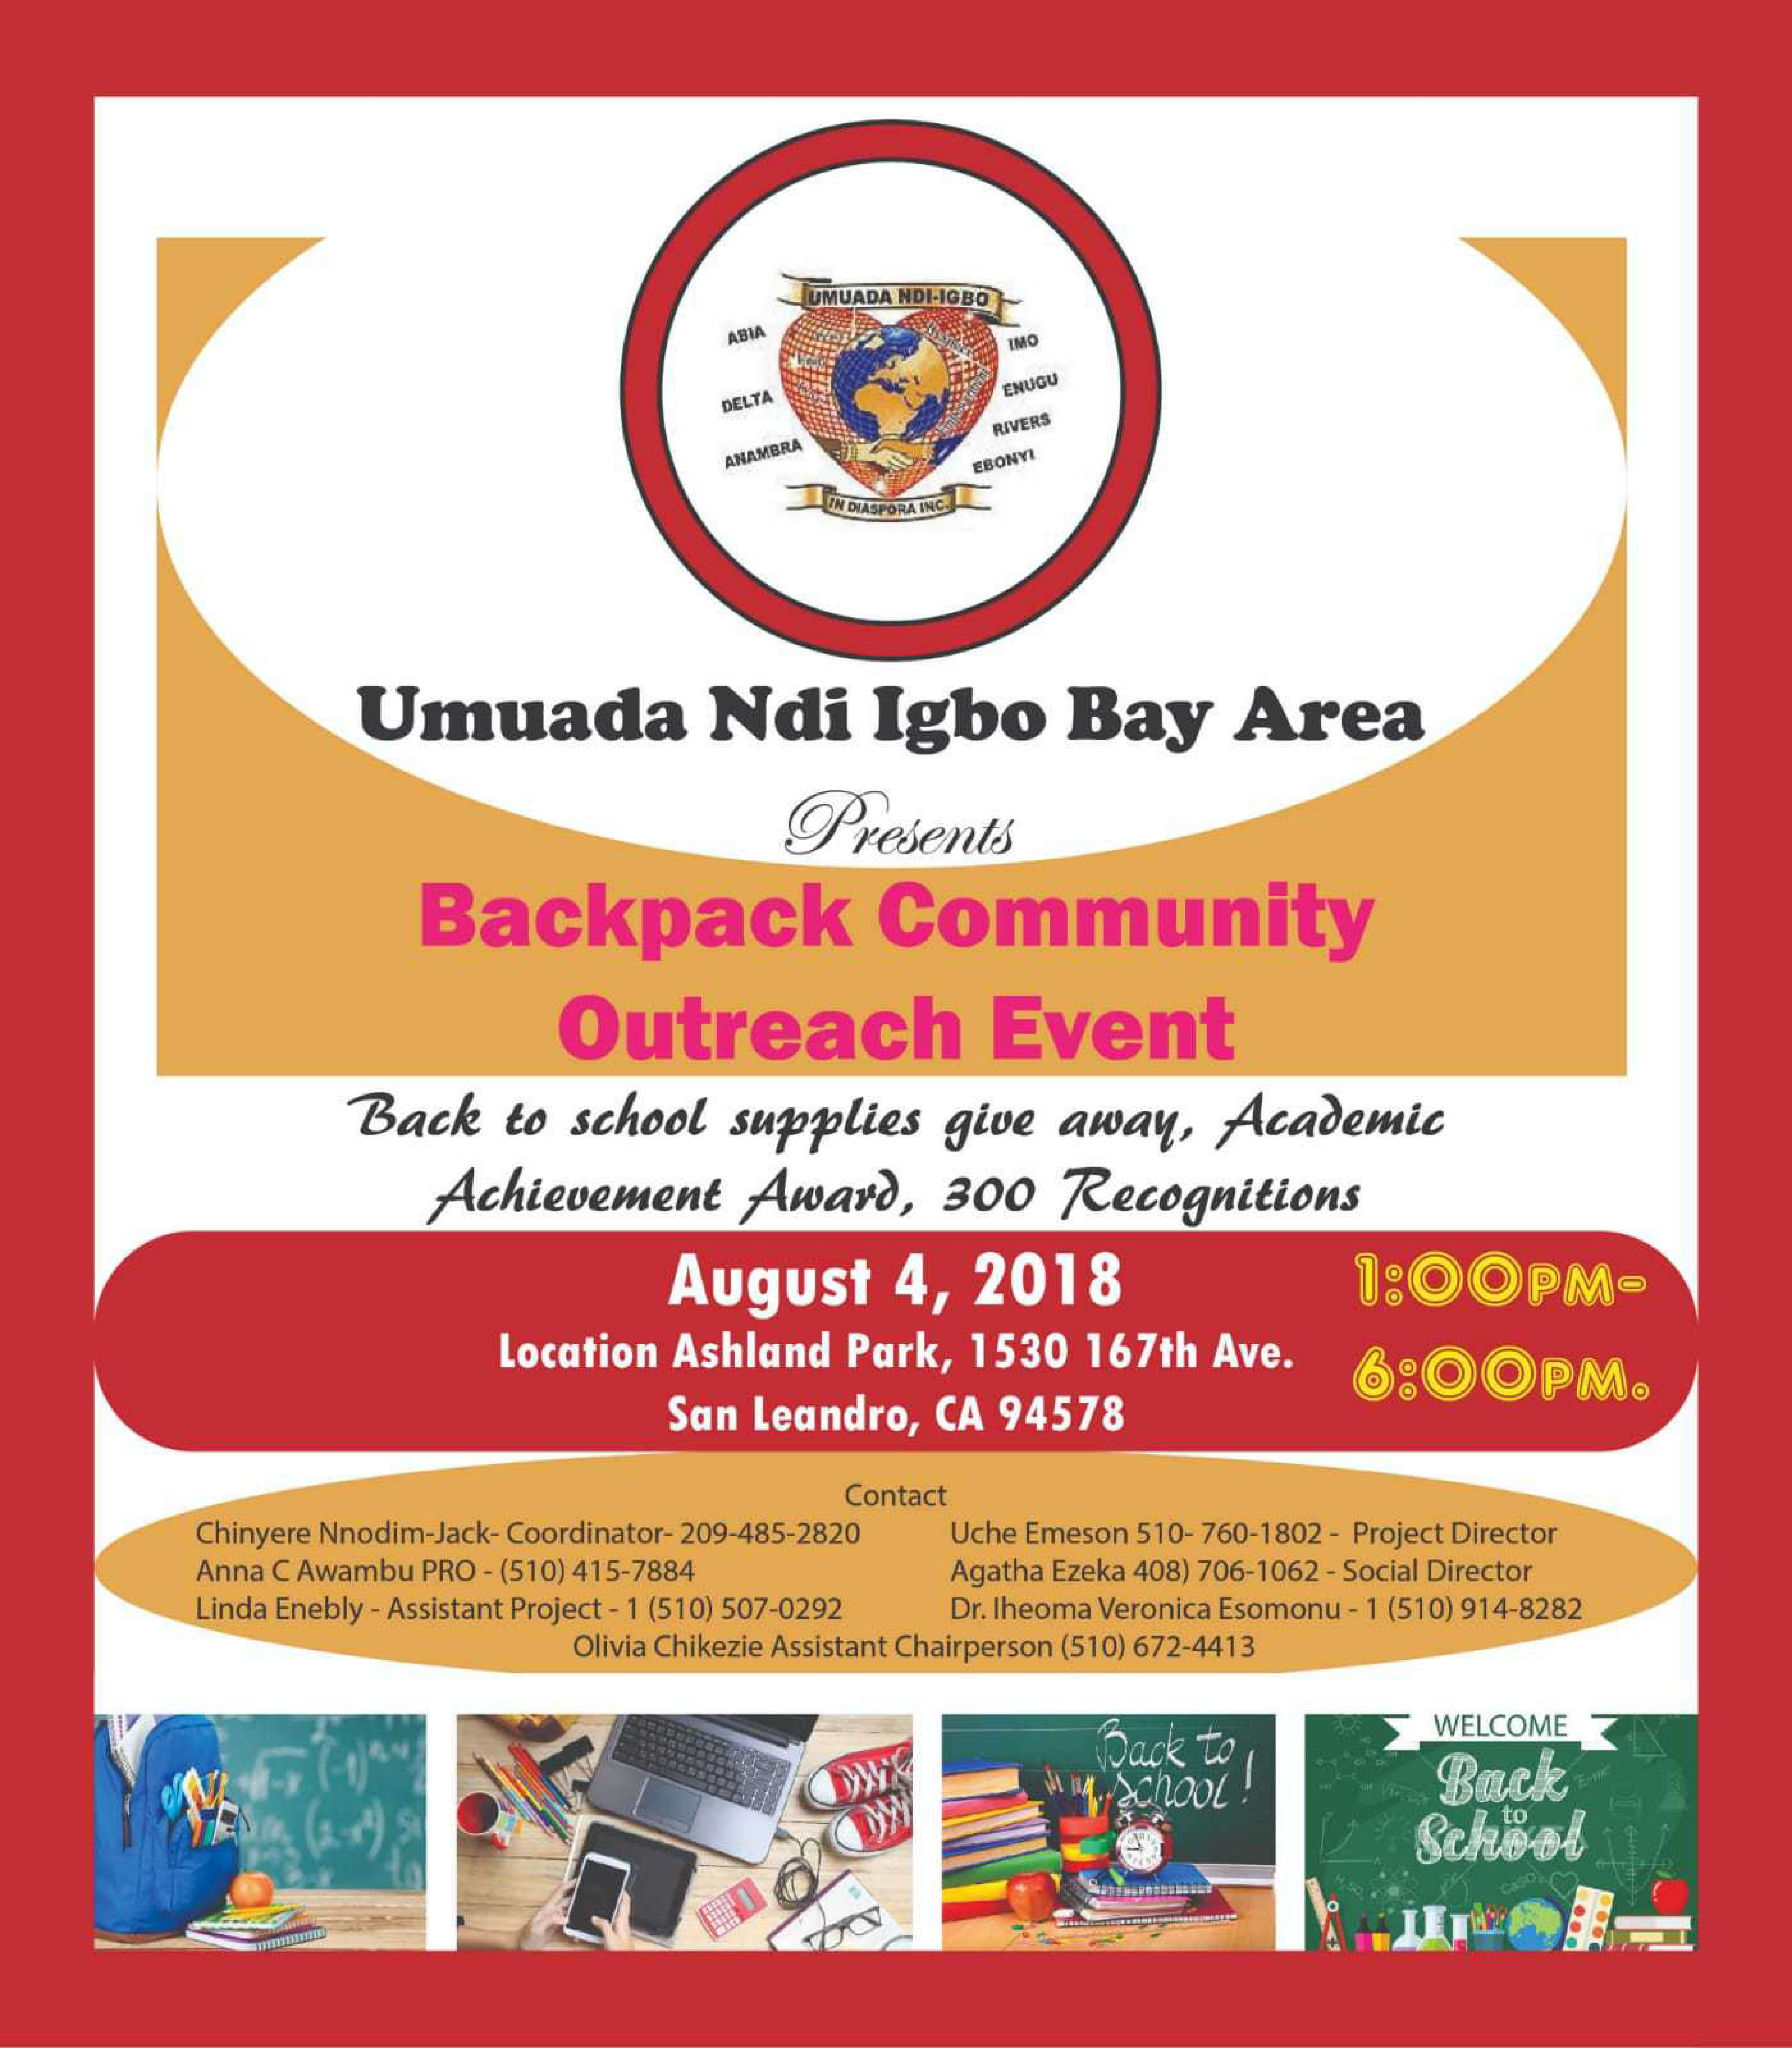 Backpack Community Outreach Event